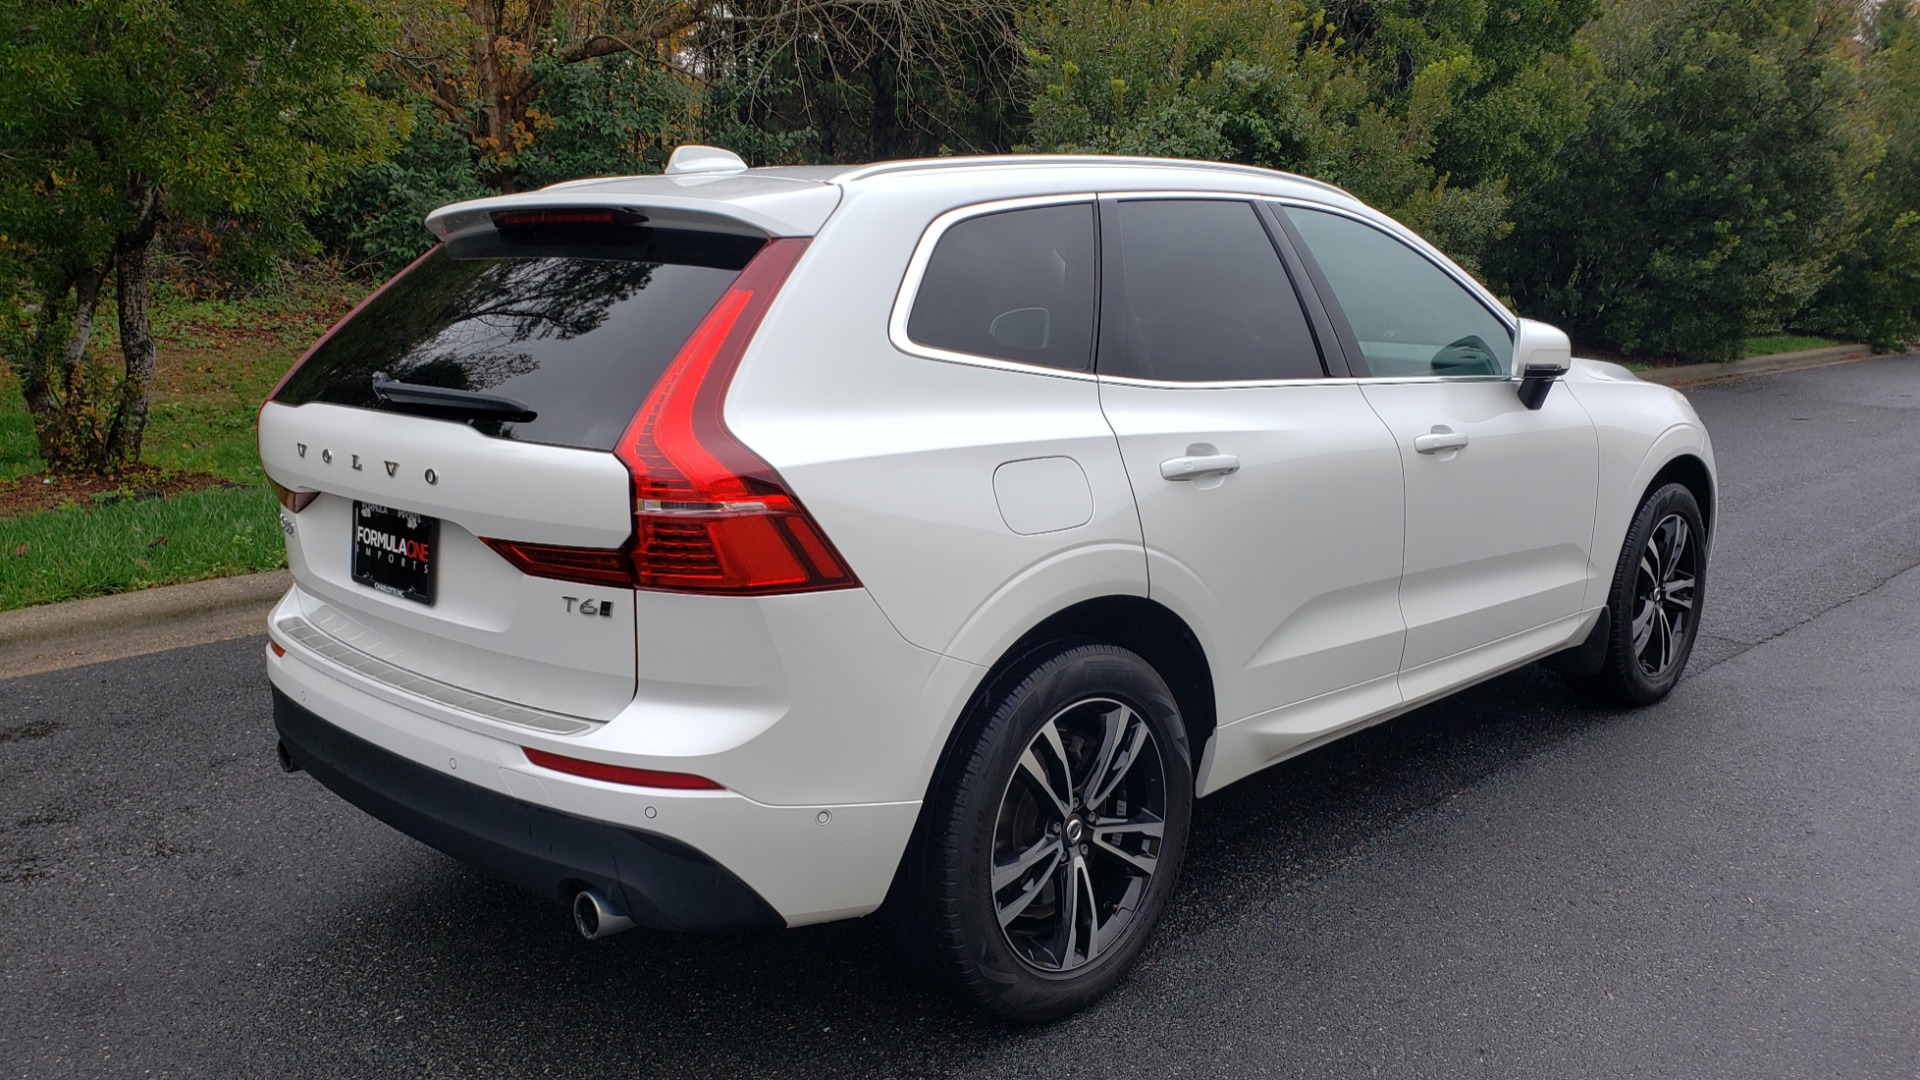 Used 2018 Volvo XC60 MOMENTUM AWD / NAV / SUNROOF / LKA / BLIS / PRK ASST for sale Sold at Formula Imports in Charlotte NC 28227 6